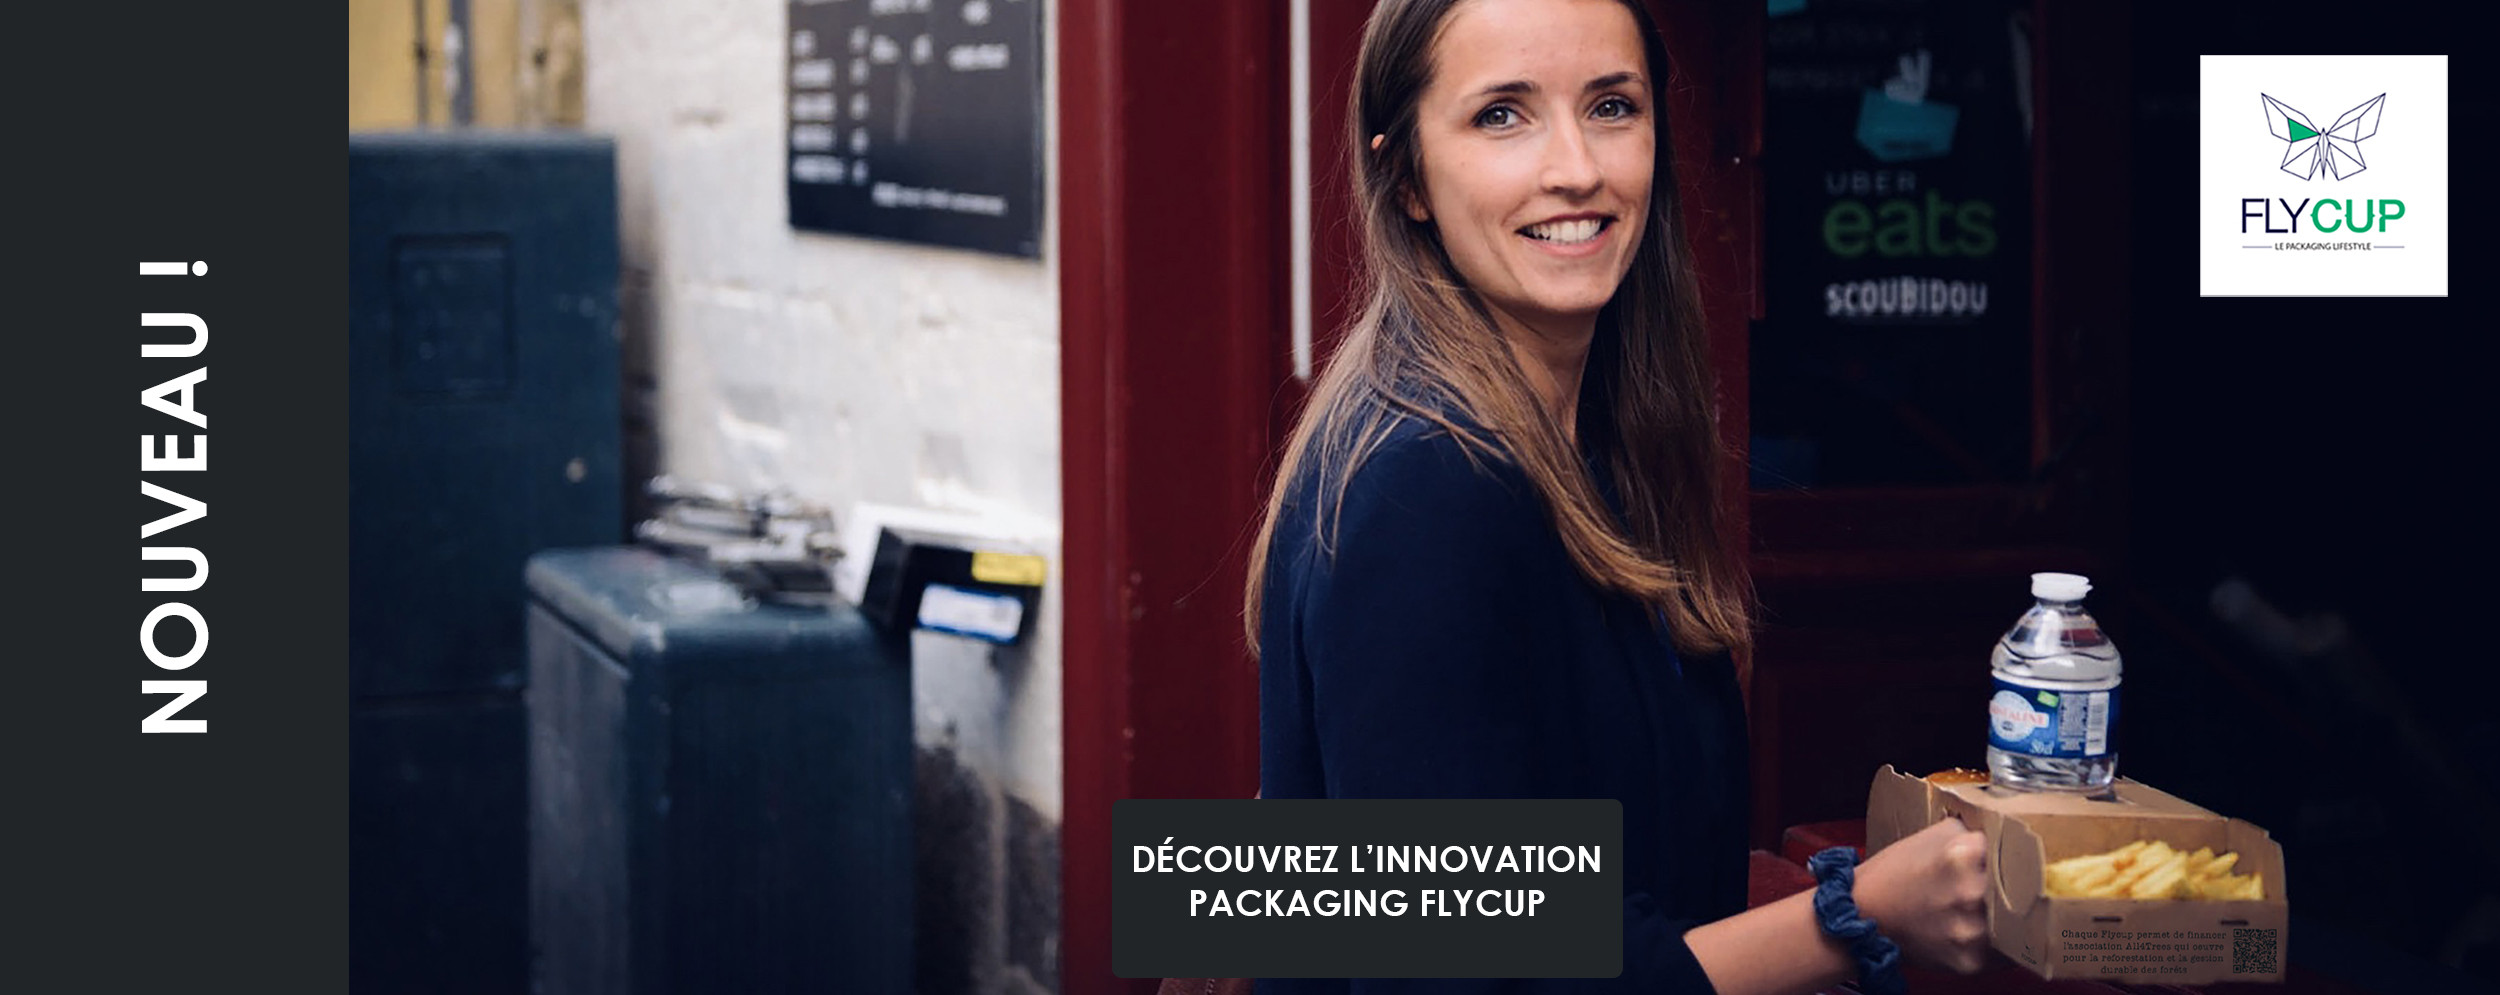 innovation-emballage-alimentaire-flycup